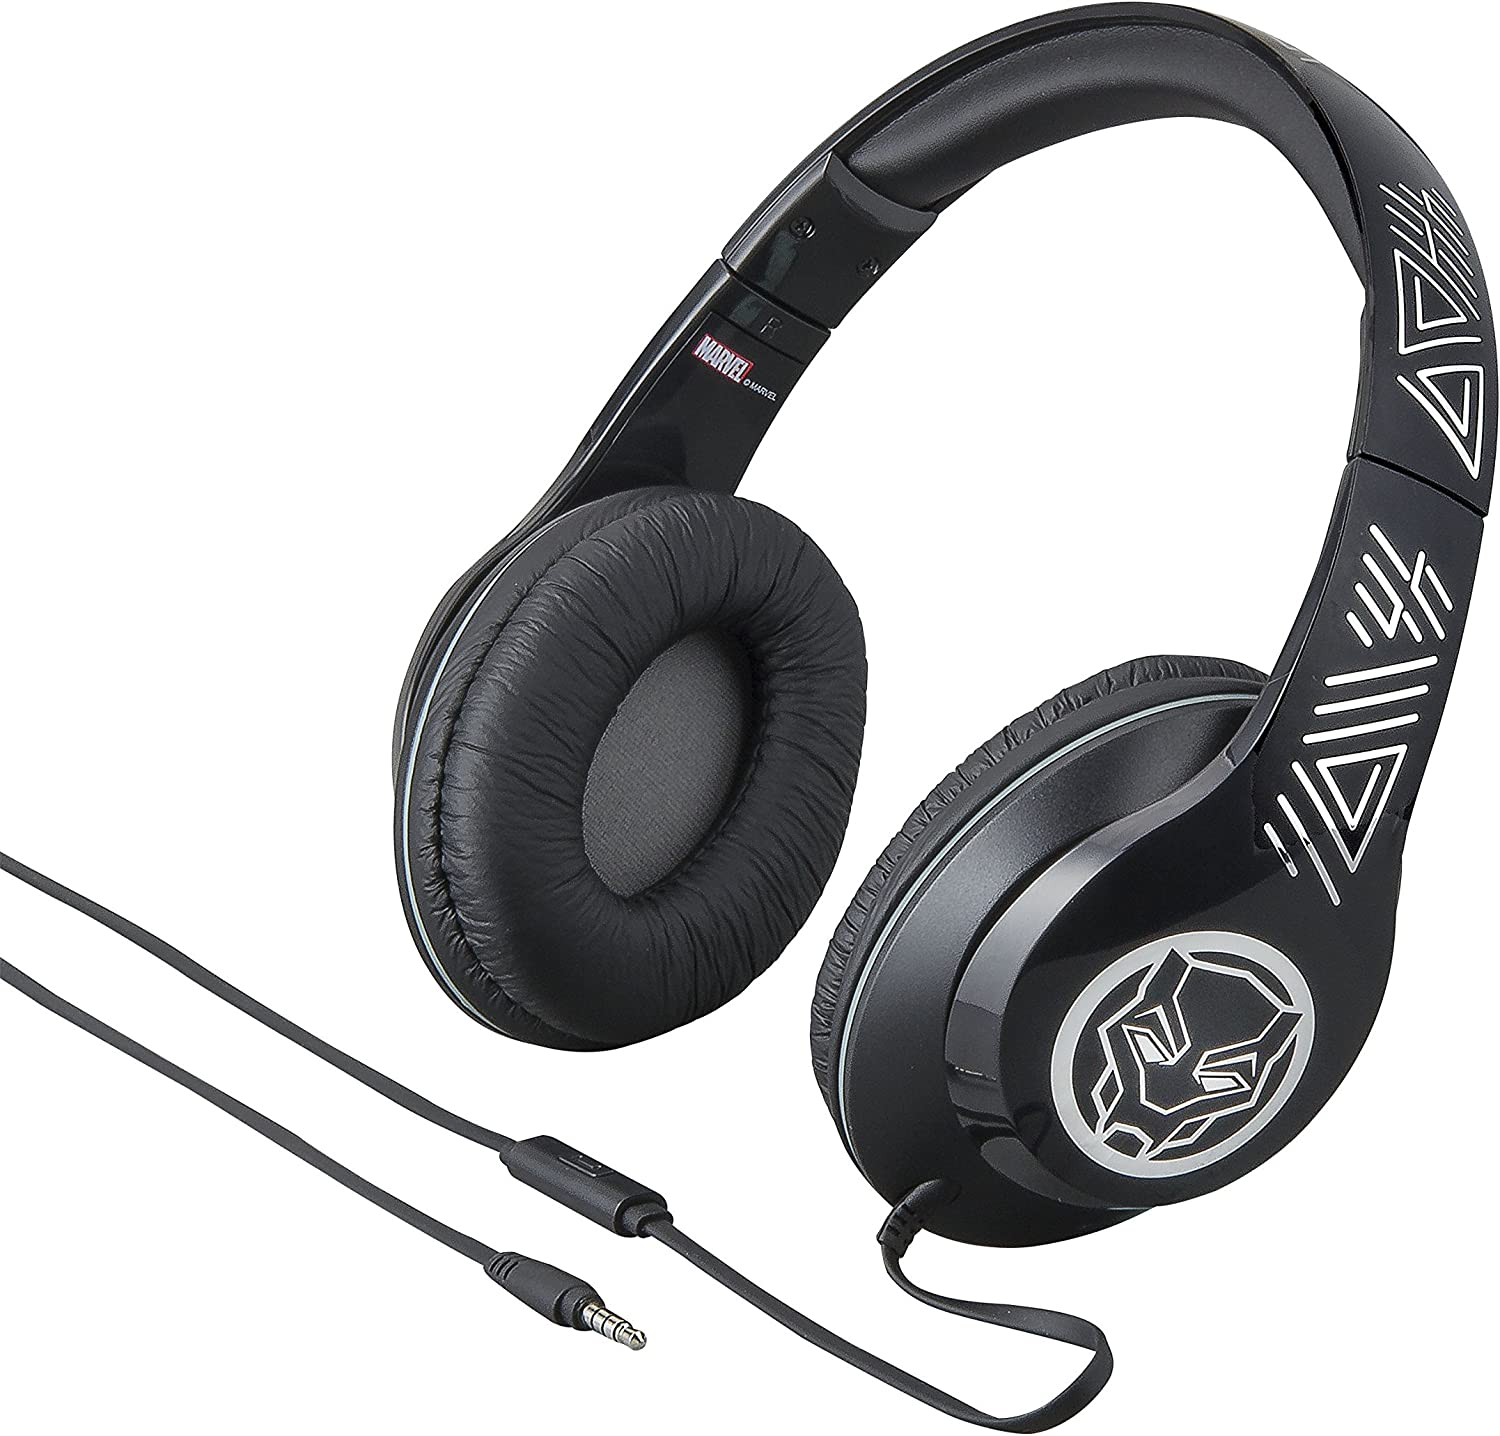 Marvel Over The Ear Wired Headphones with Built in Microphone Quality Sound from The Makers of iHome (Black Panther)